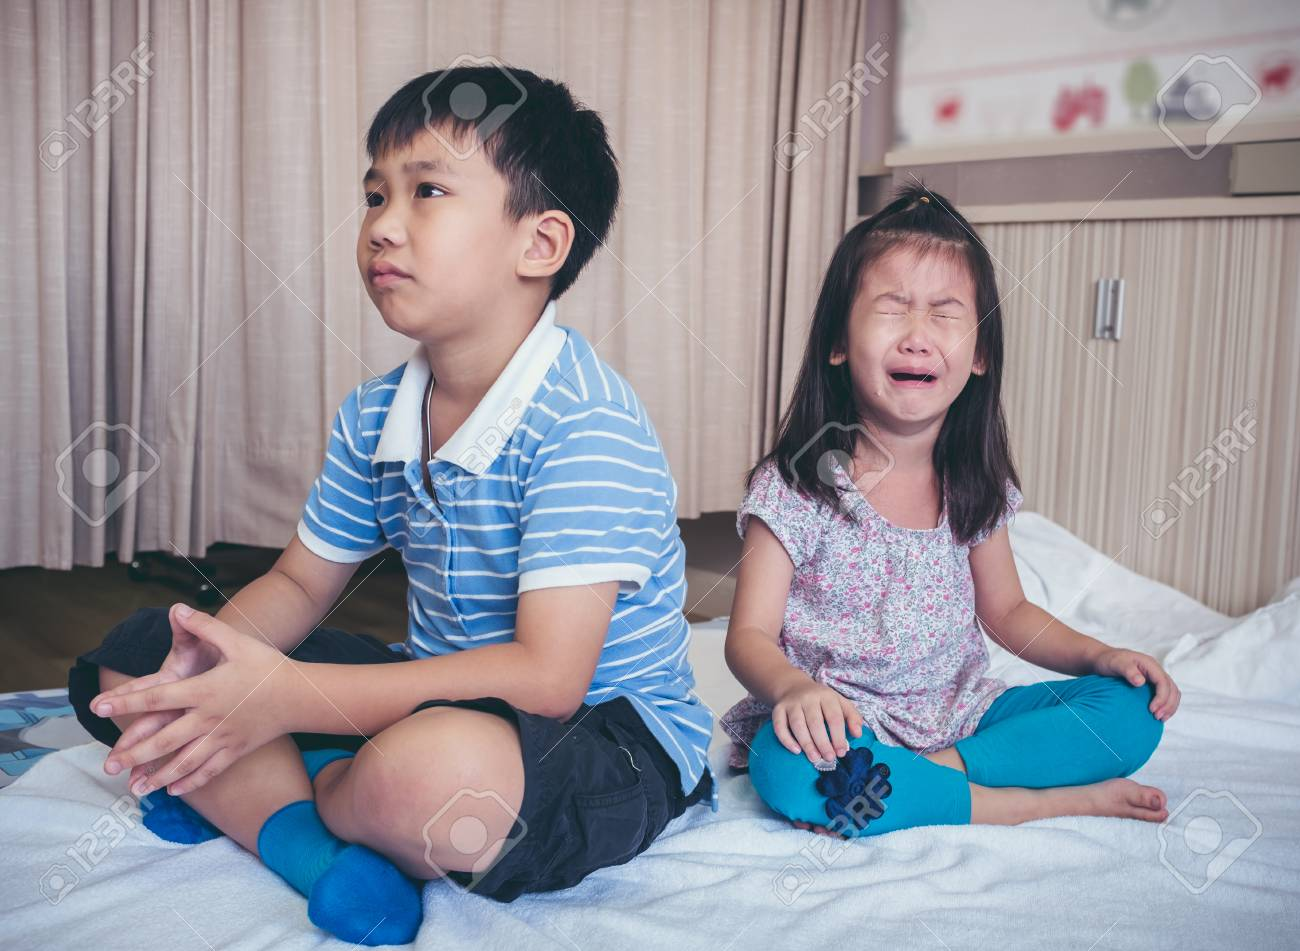 Quarreling conflict of children. Asian girl has problem between brother and scream crying with tears, sadden boy sitting near by. Relationship difficulties in family concept. - 92492628